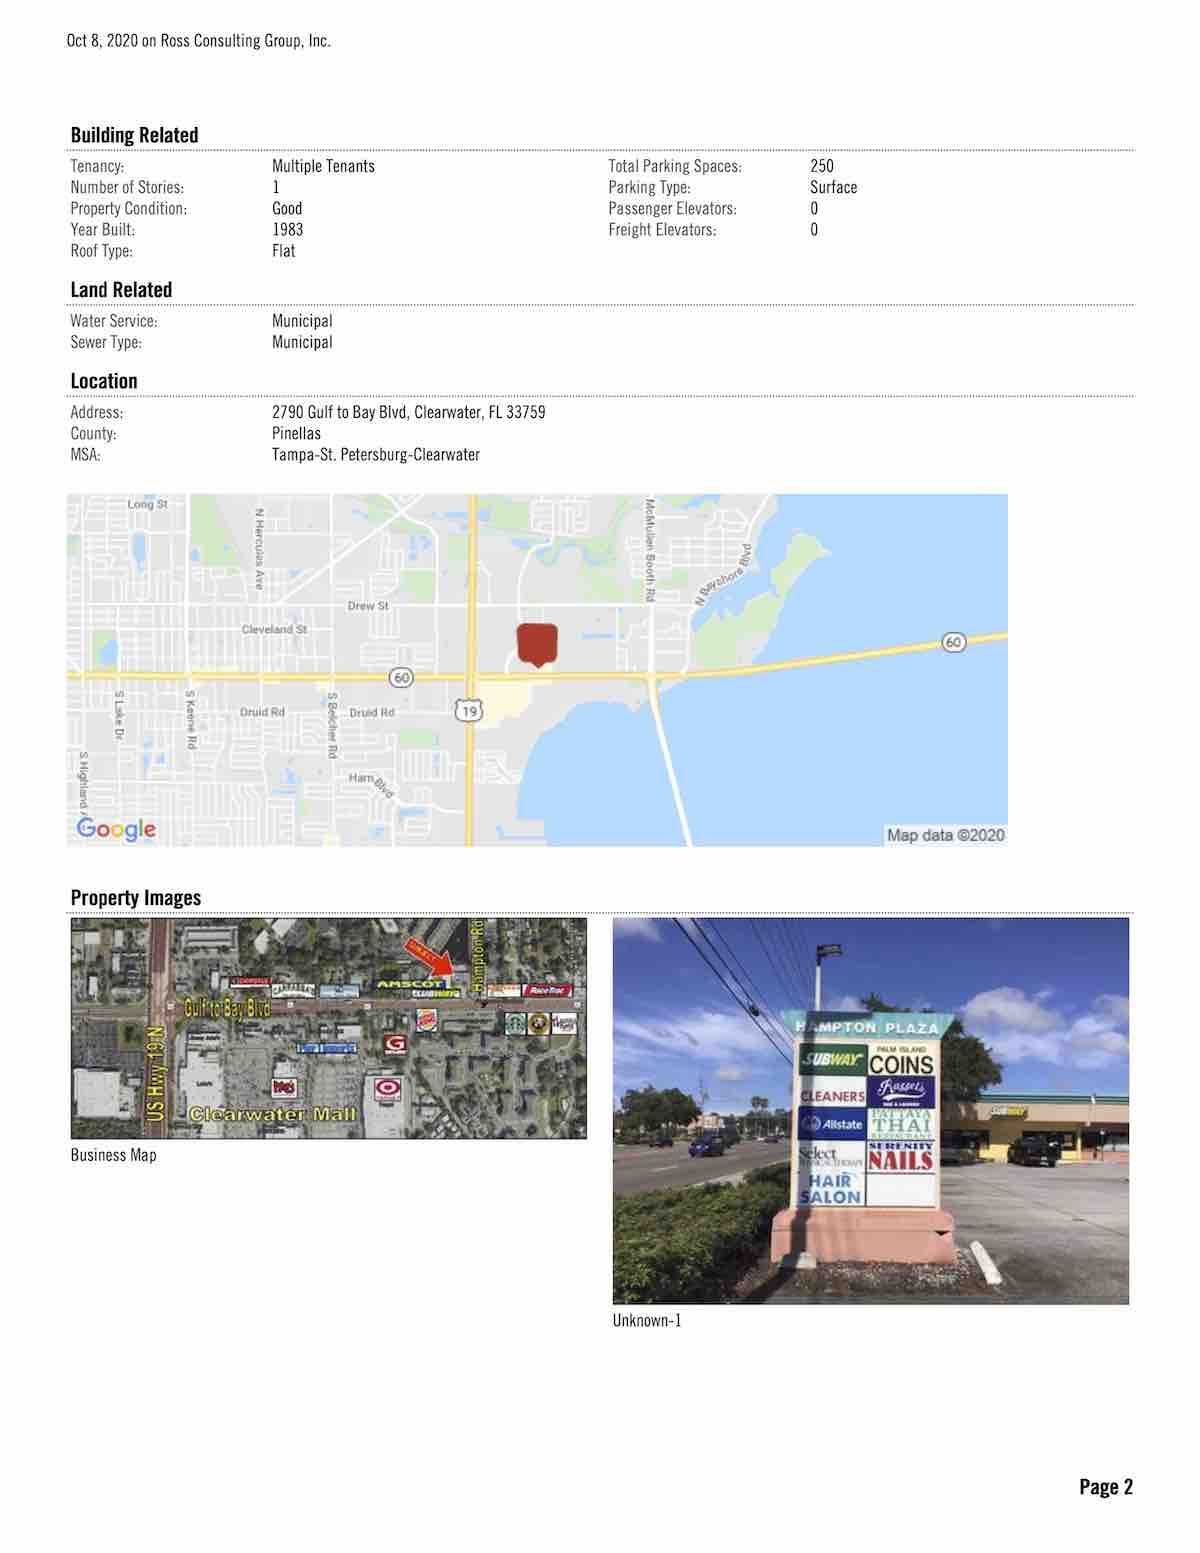 FOR LEASE - Hampton Plaza - 2790 Gulf to Bay Blvd, Clearwater, FL 33759 P2